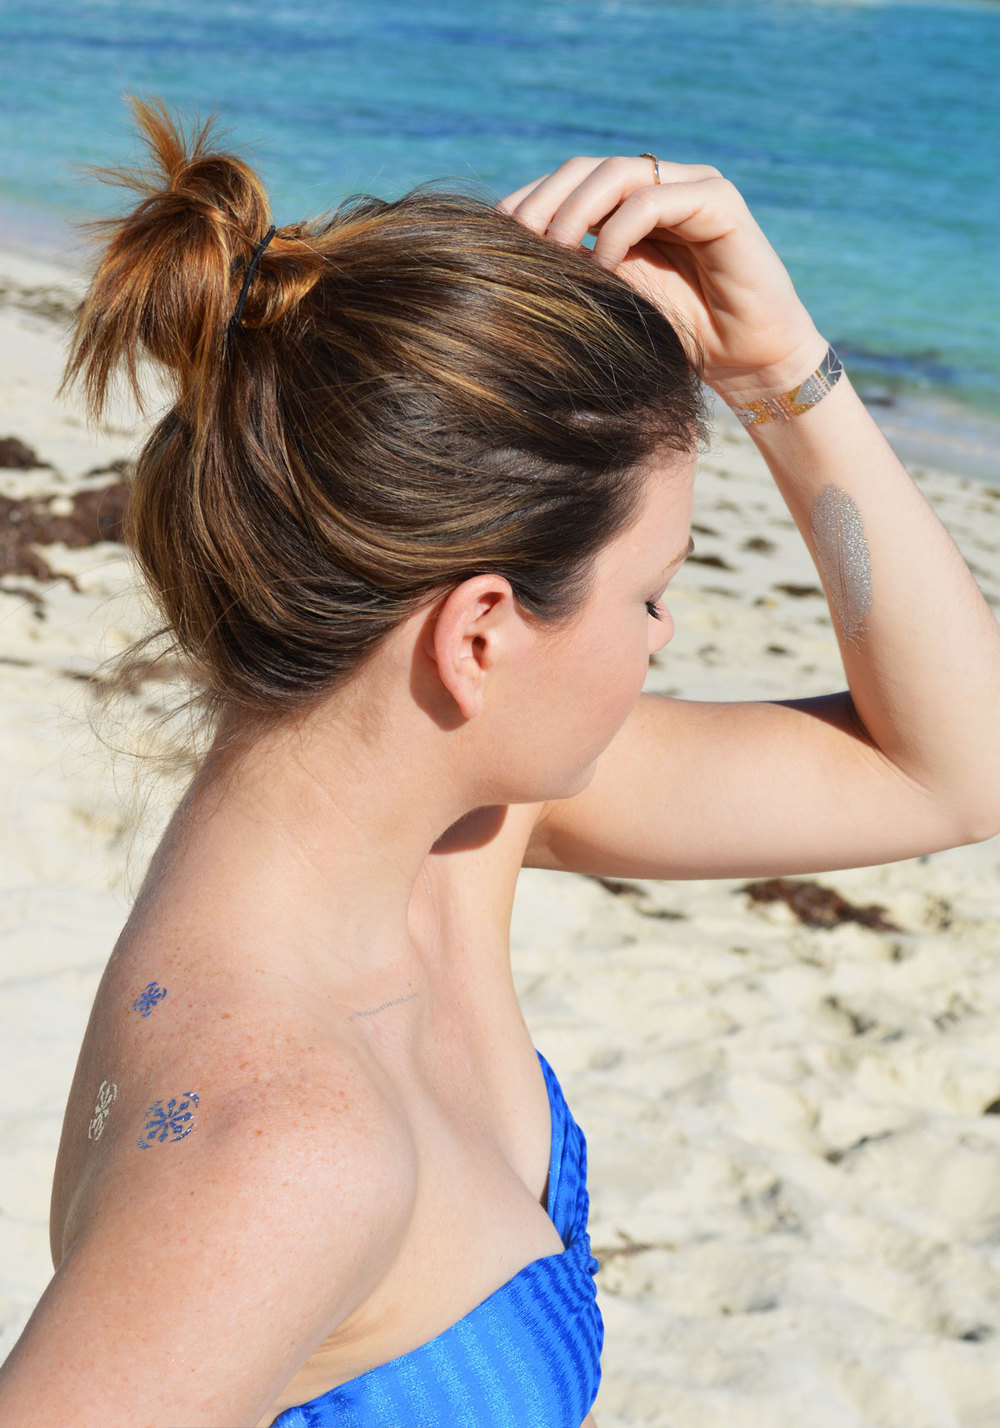 Shine On Flash Tattoos Miami